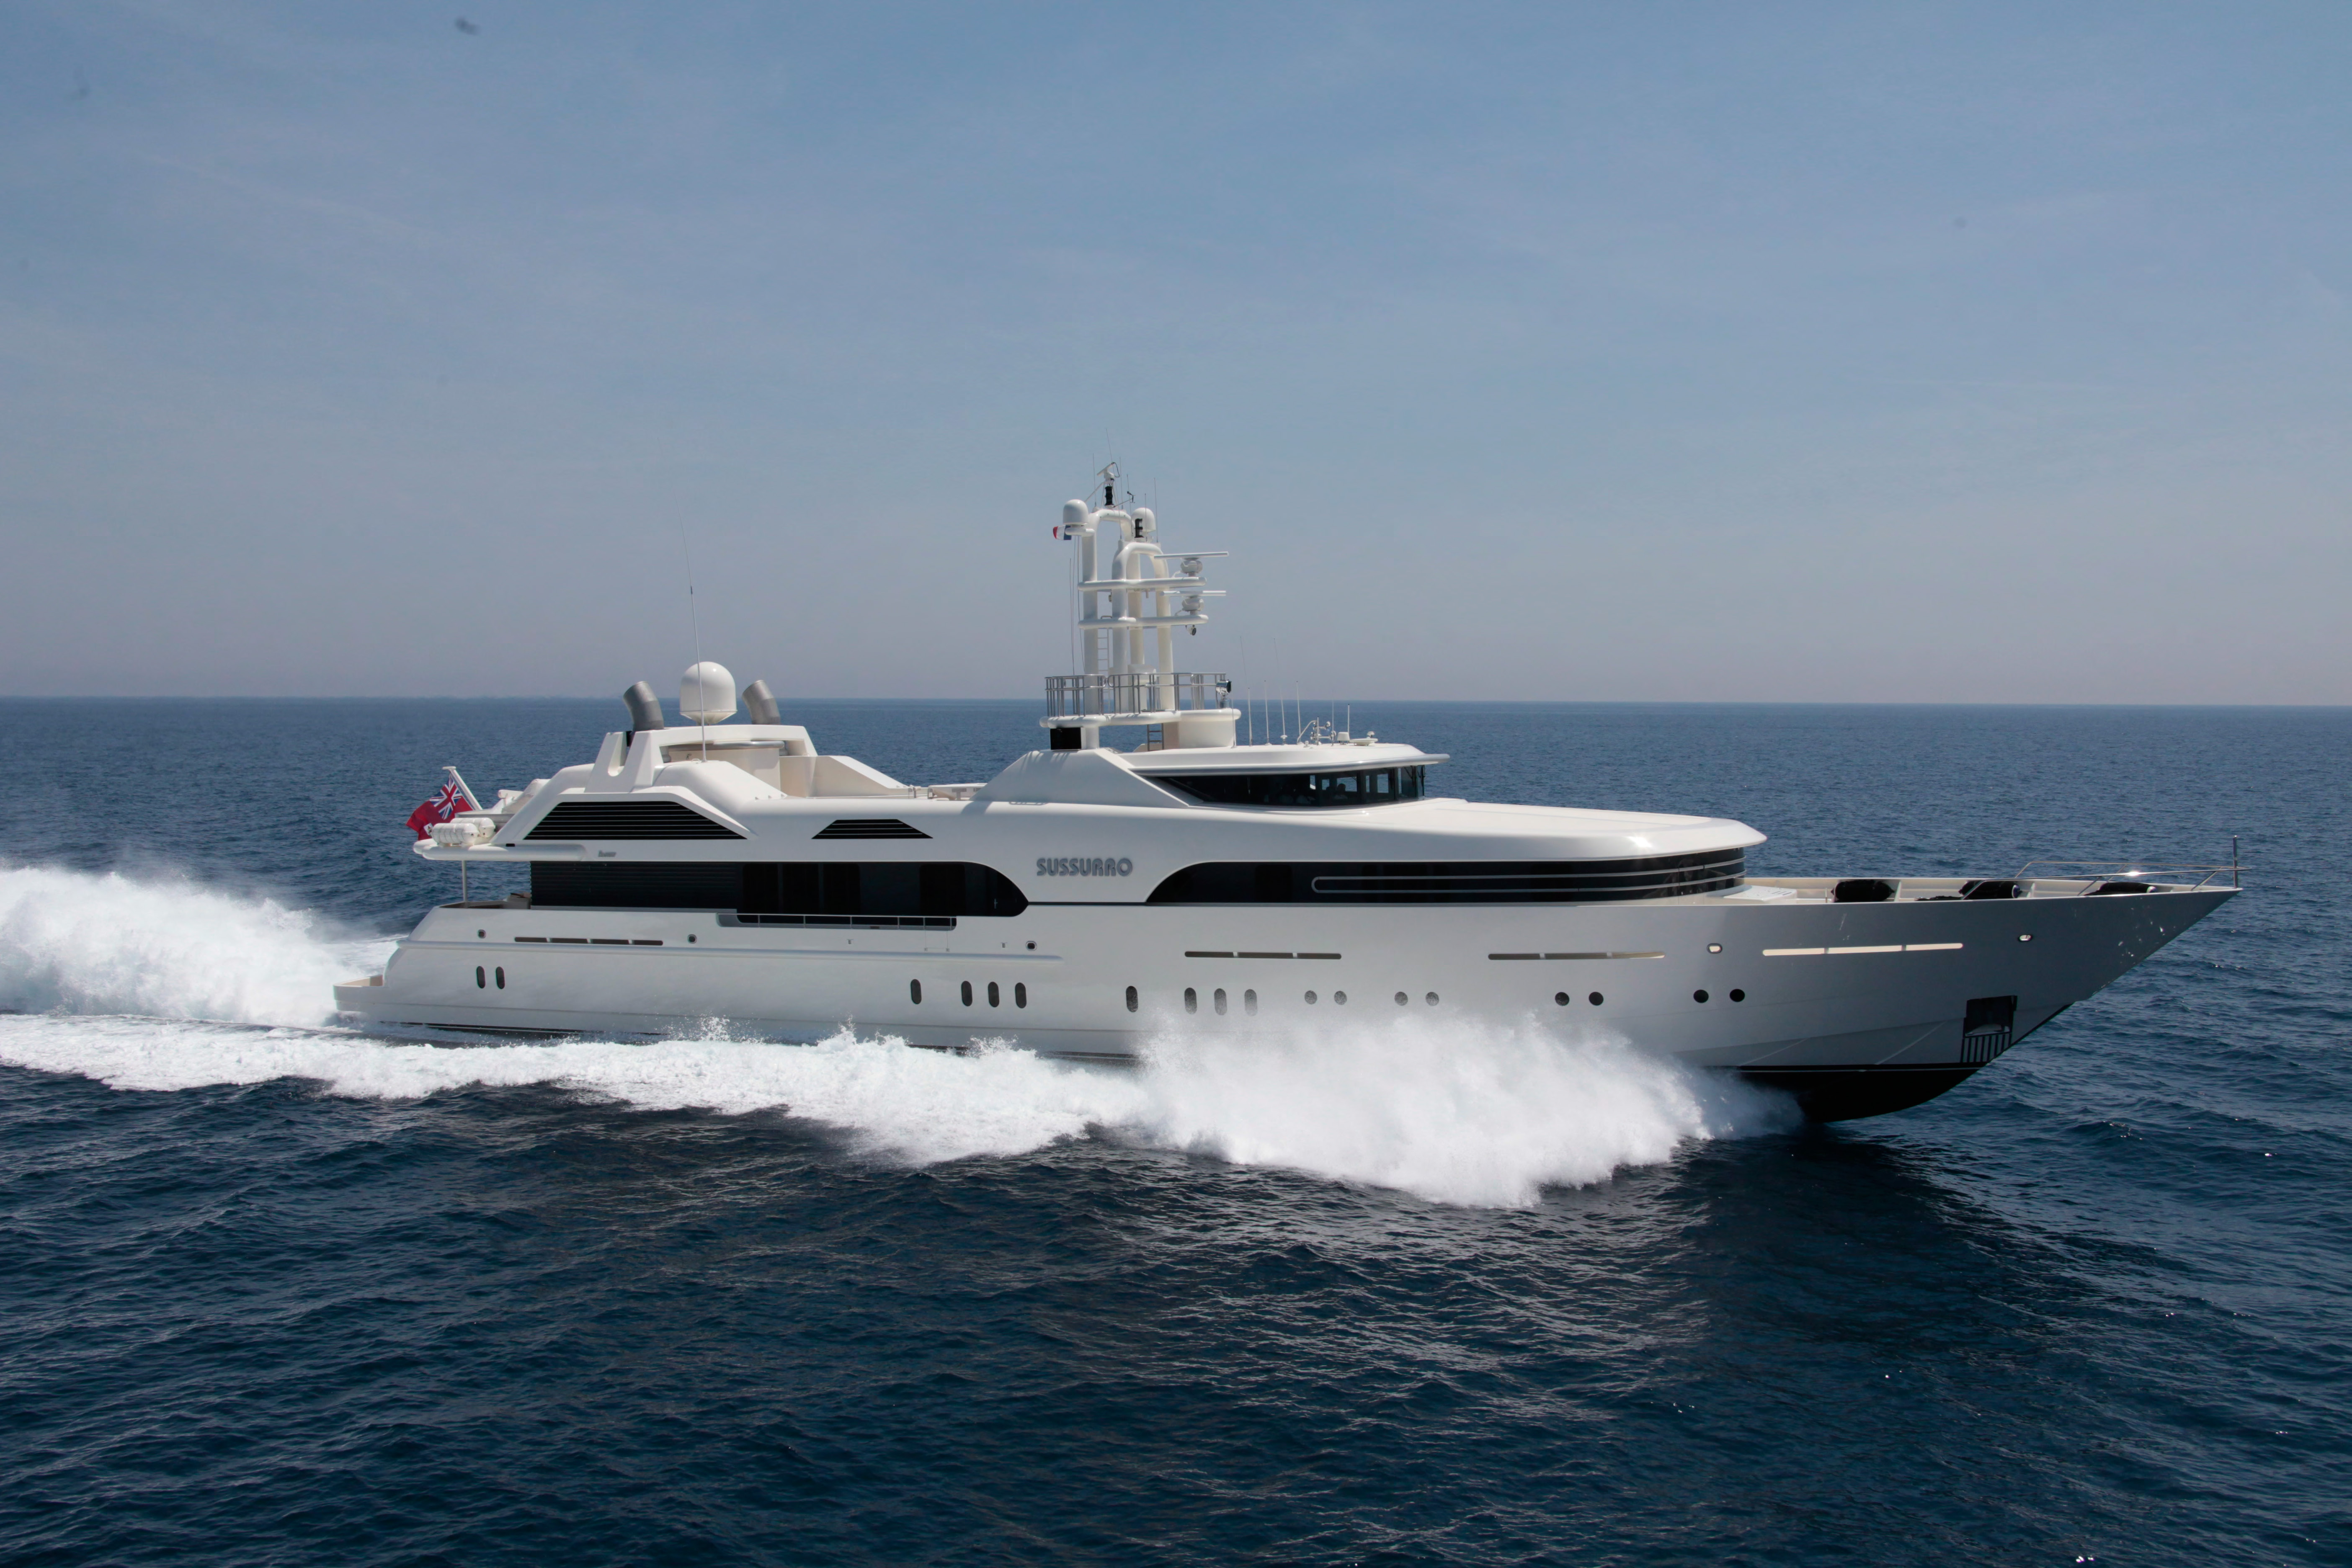 SUSSURRO specs with detailed specification and builder summary